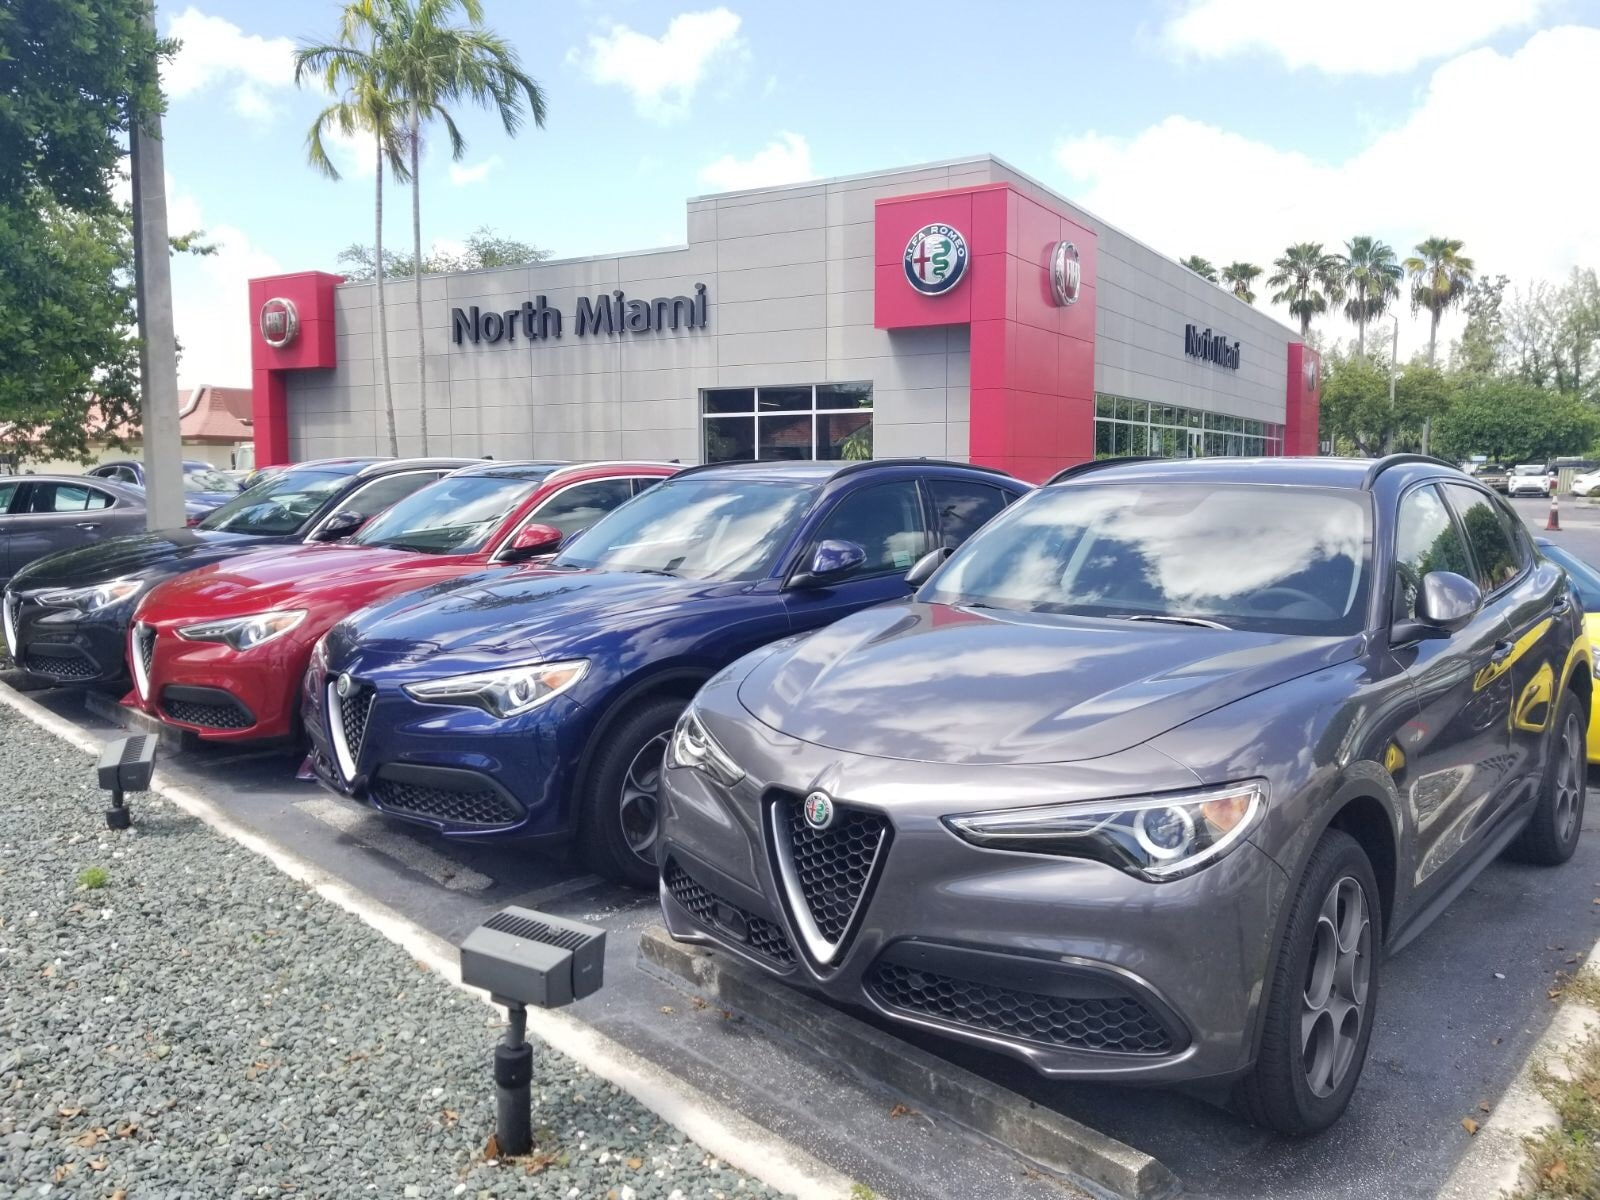 alfa romeo of north miami new alfa romeo dealership in north miami fl 33181. Black Bedroom Furniture Sets. Home Design Ideas